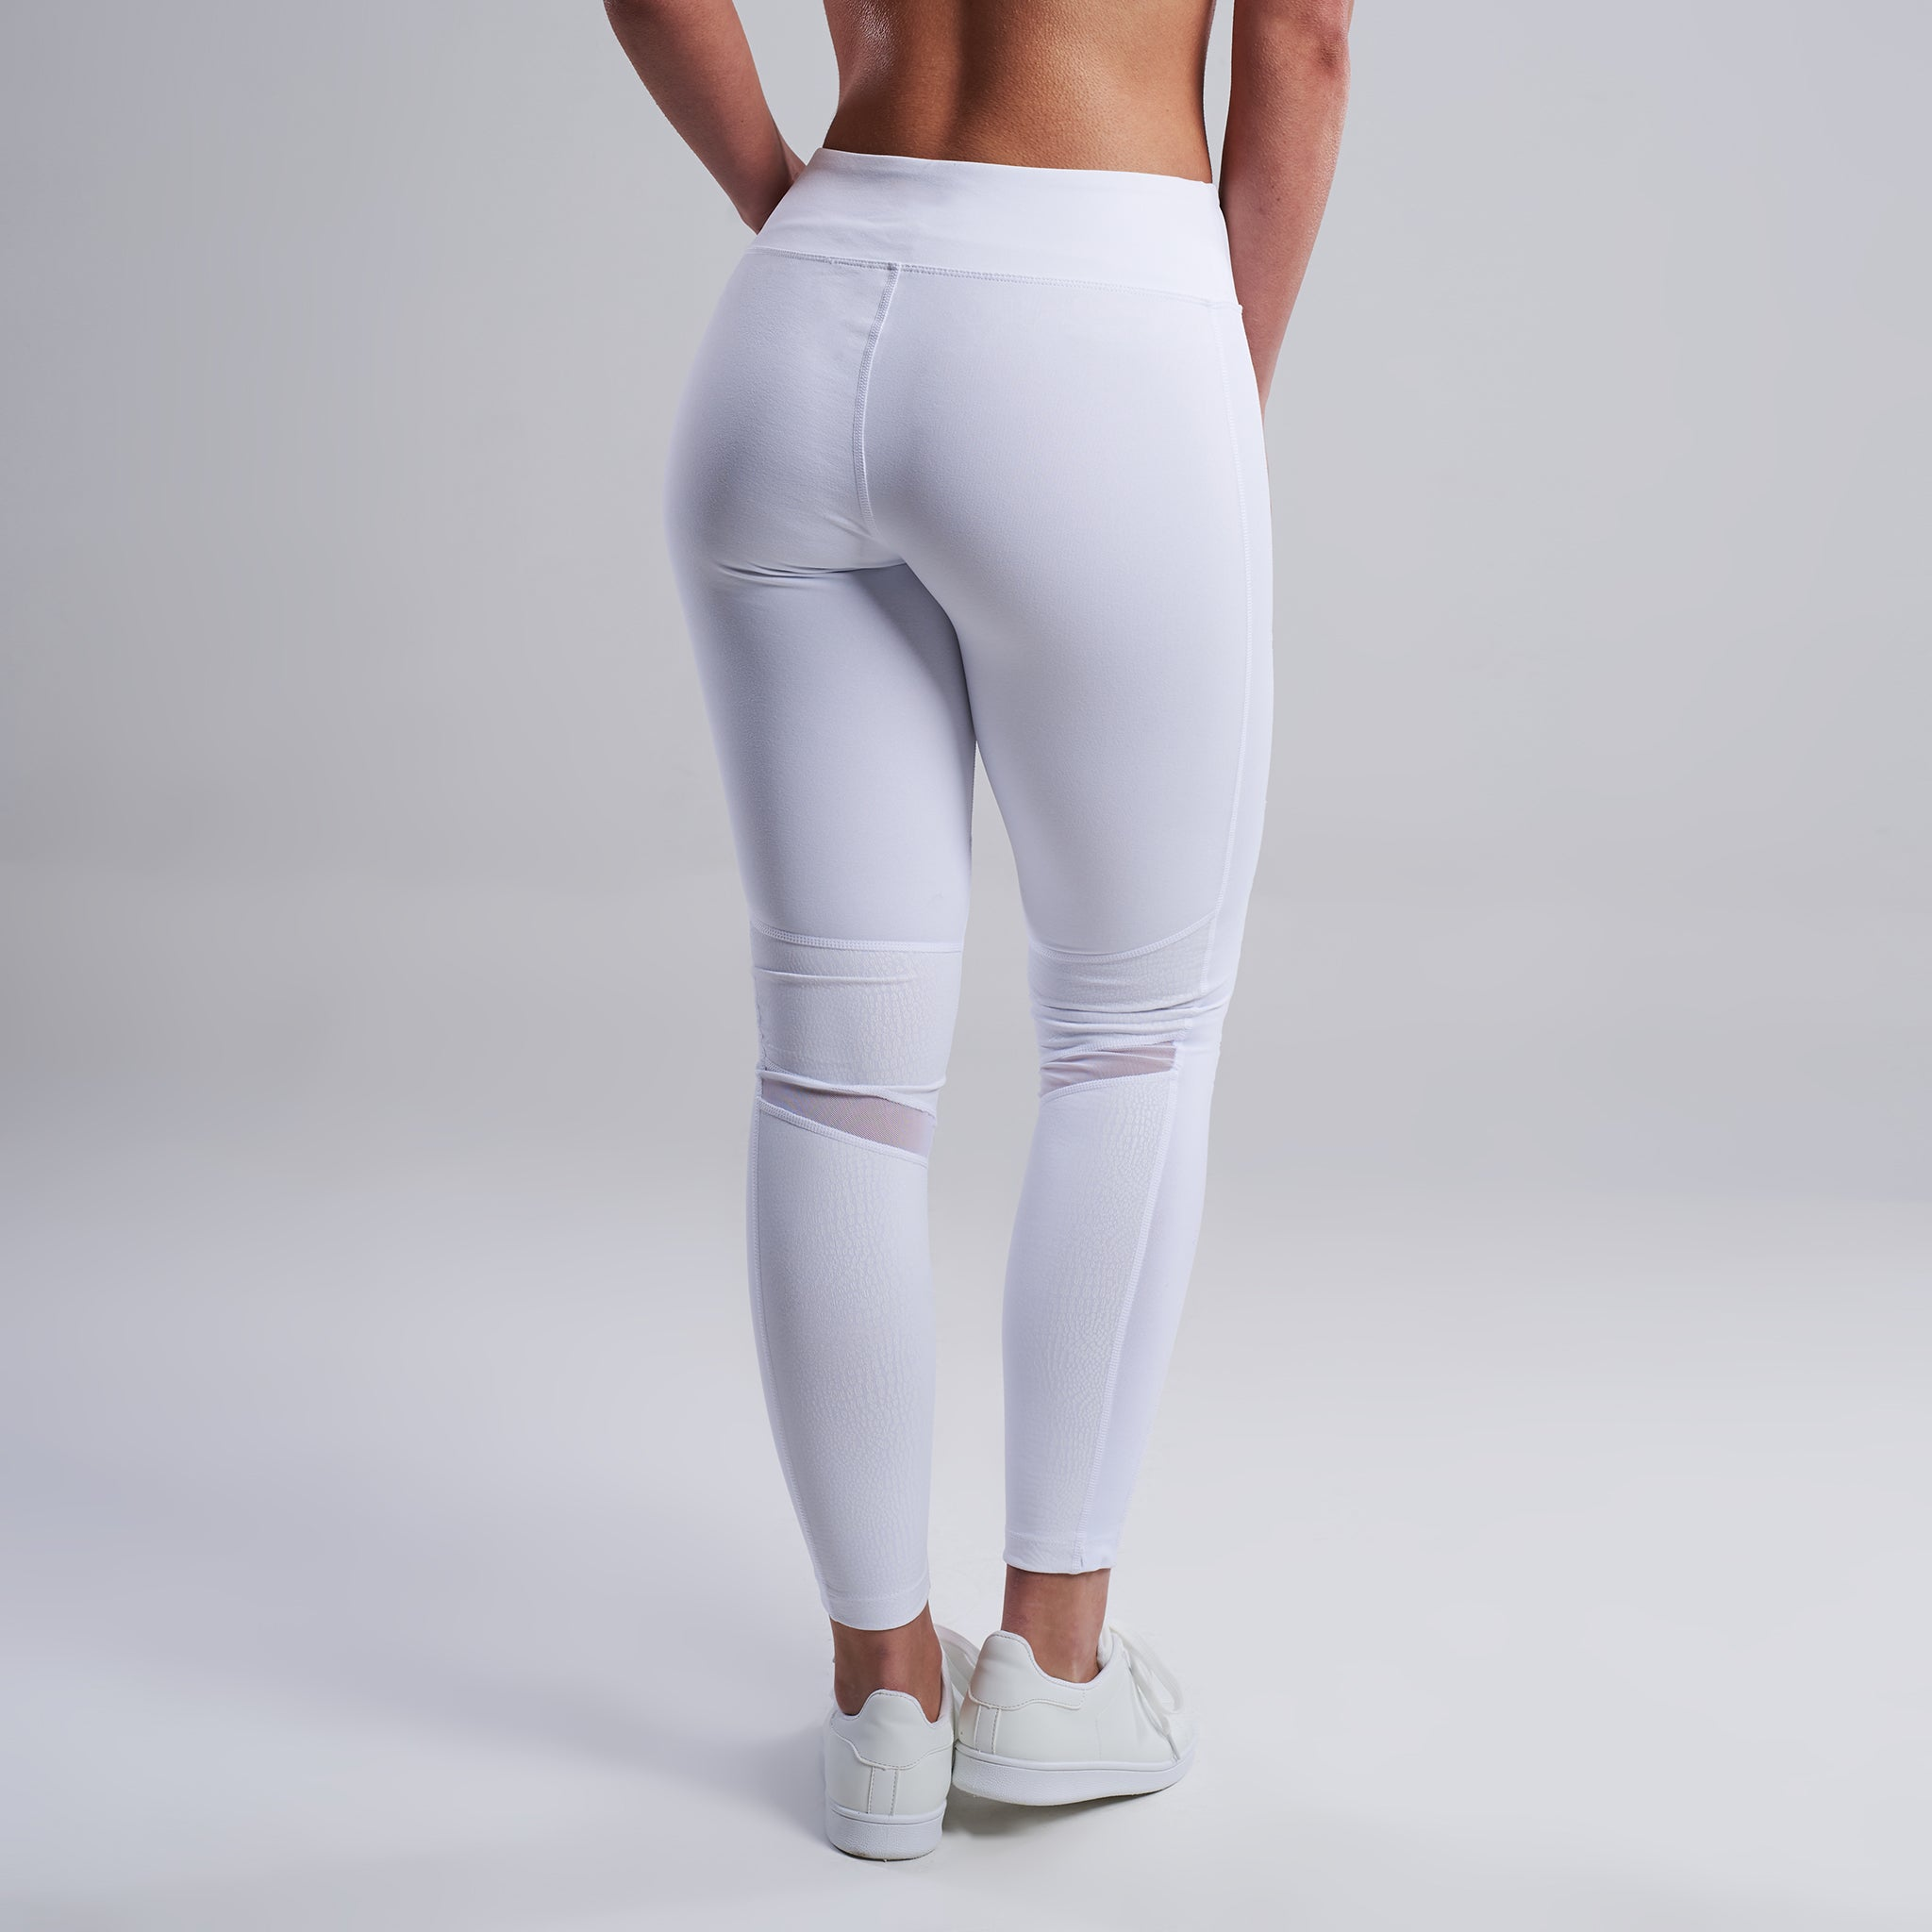 Suki Mesh Leggings in White